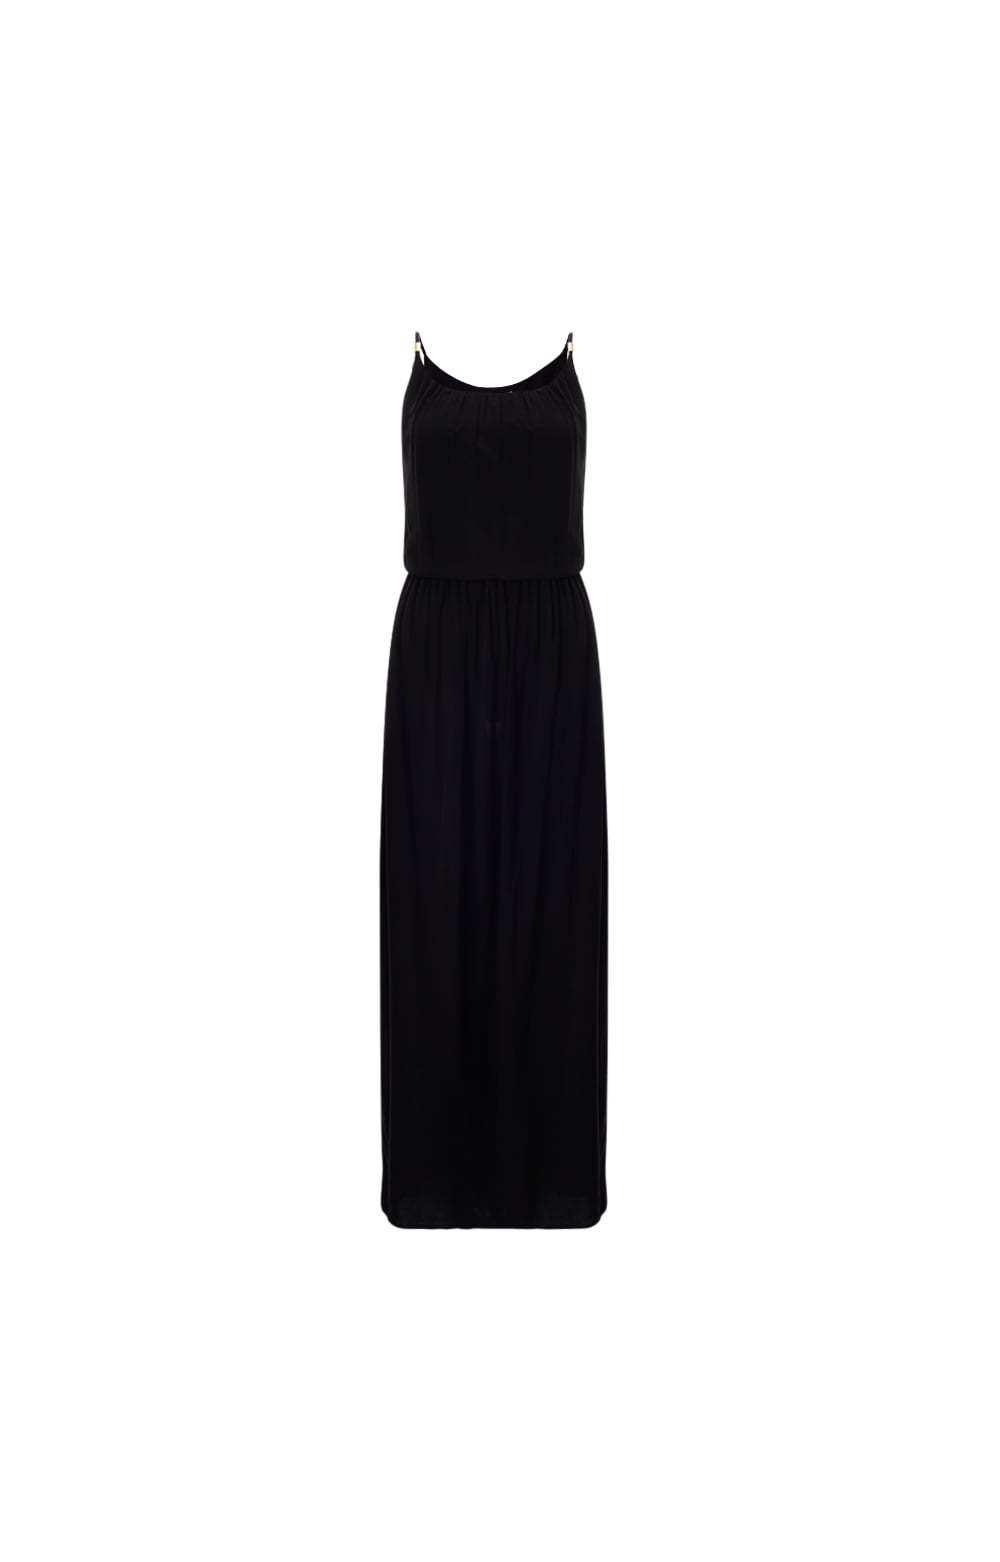 Black Bridgehampton Drop Waist Maxi Dress Size: - sleeve style: spaghetti straps; fit: fitted at waist; pattern: plain; style: maxi dress; length: ankle length; predominant colour: black; occasions: casual, holiday; neckline: scoop; fibres: cotton - stretch; sleeve length: sleeveless; pattern type: fabric; texture group: jersey - stretchy/drapey; season: s/s 2016; wardrobe: basic